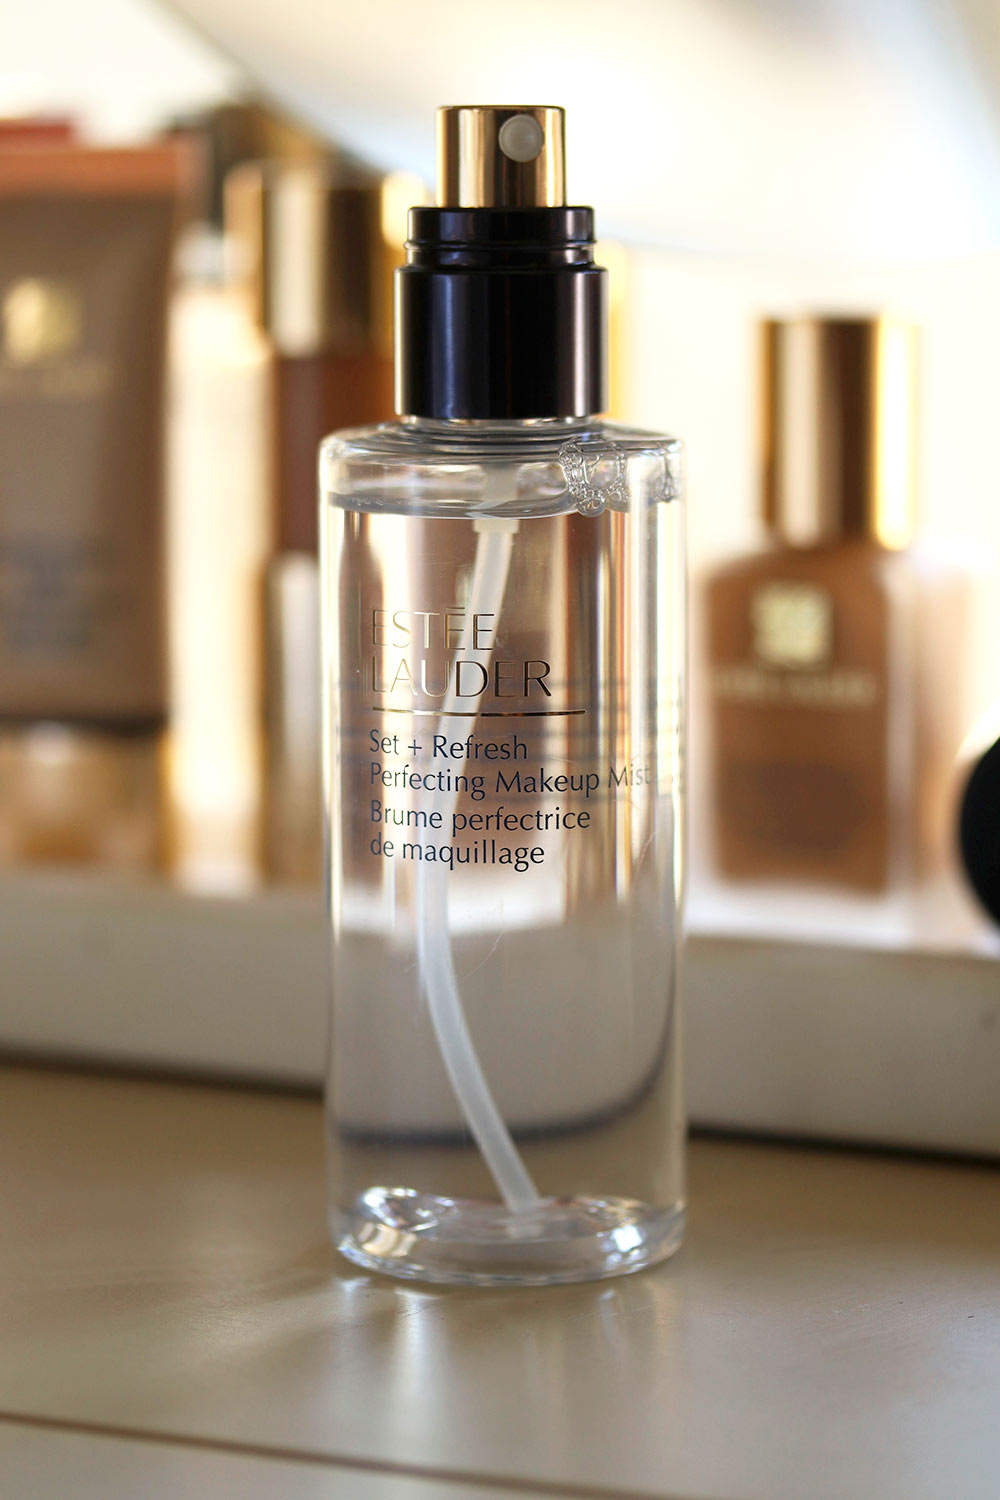 estee lauder double wear set and refresh